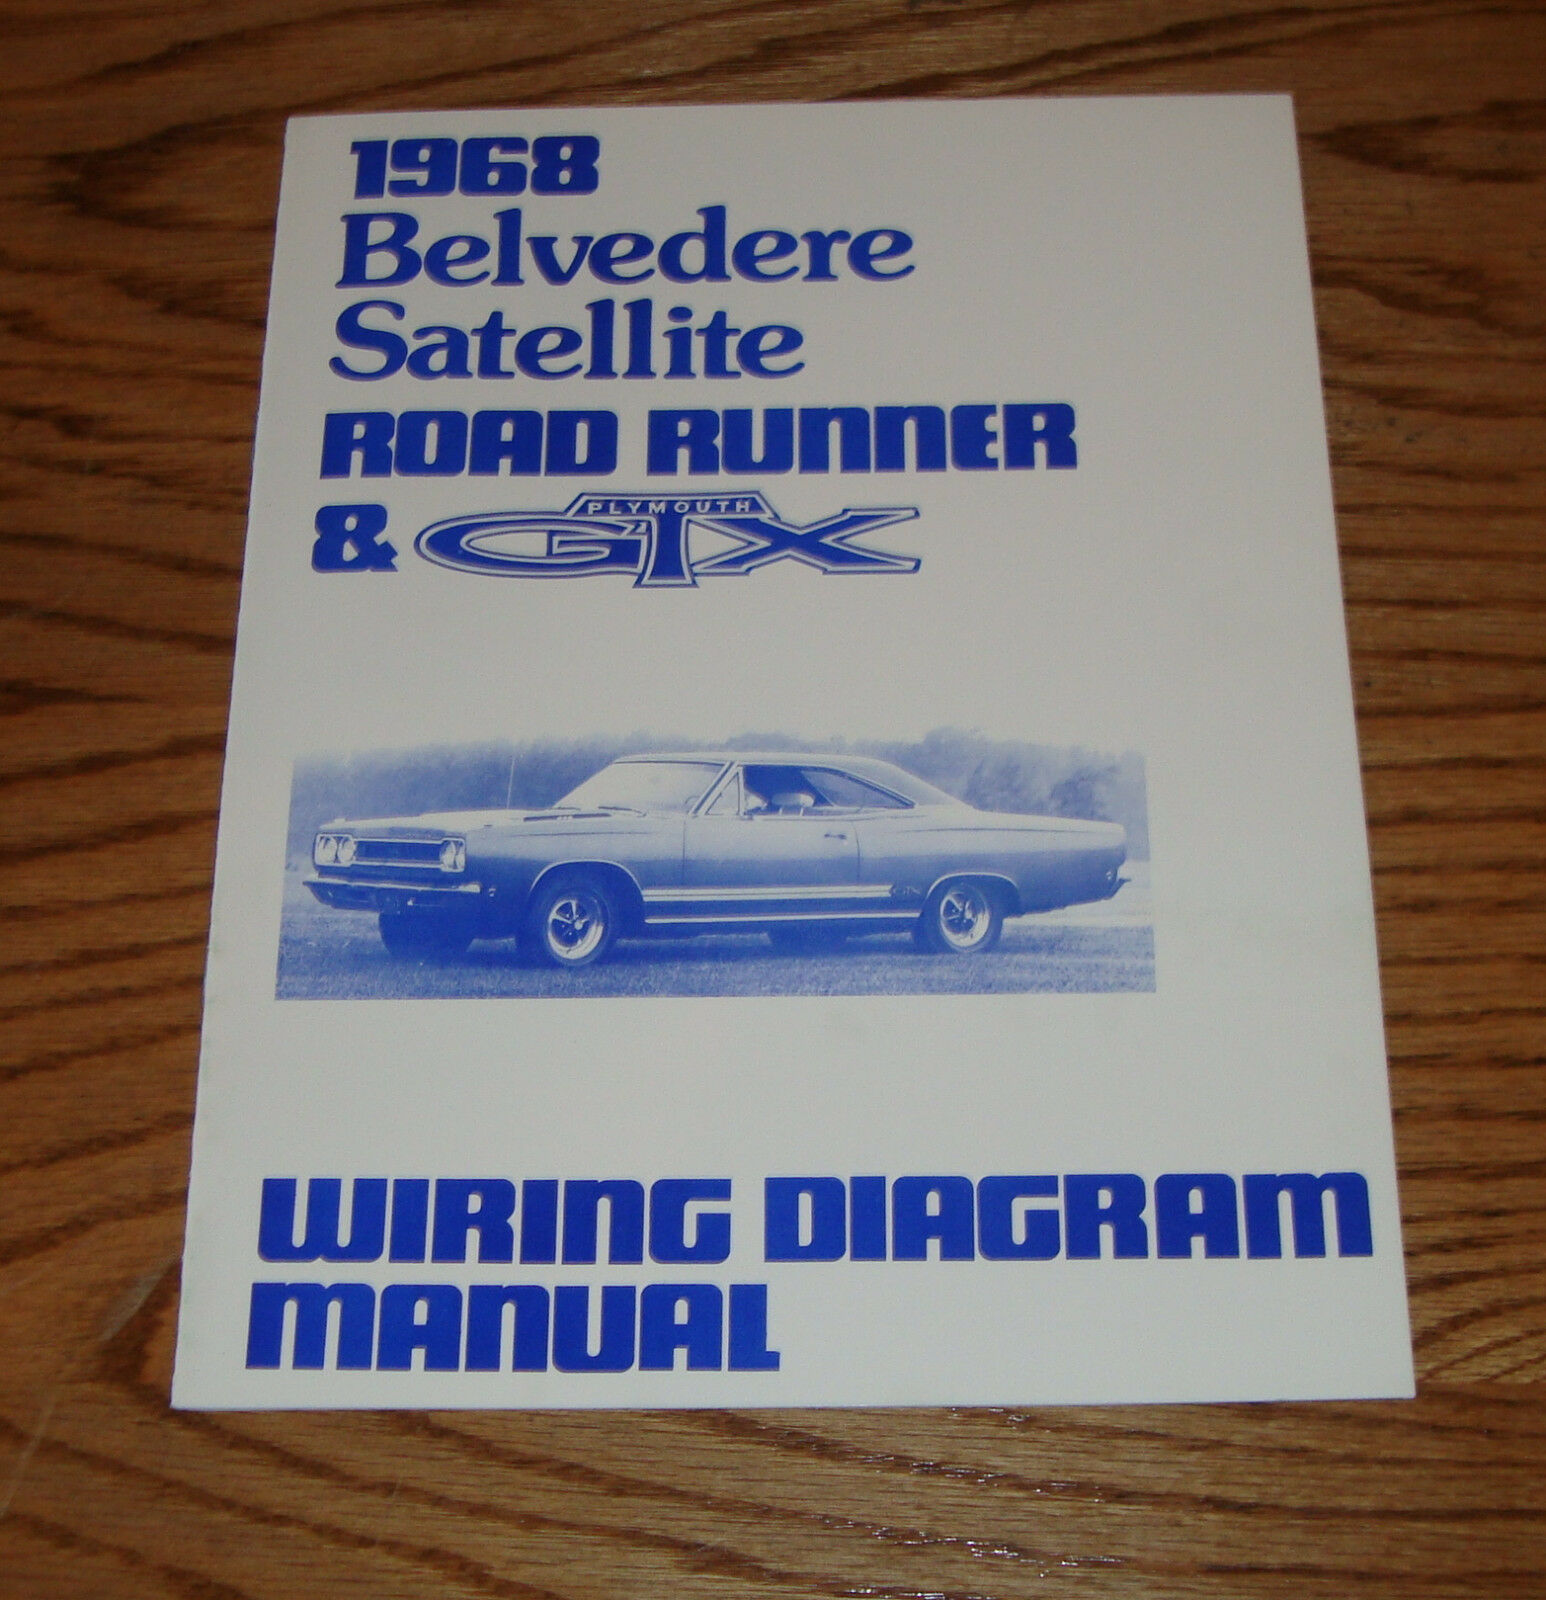 Wiring Diagram 1968 Plymouth Road Runner Custom 1973 Roadrunner Belvedere Satellite Gtx Rh Picclick Com 1967